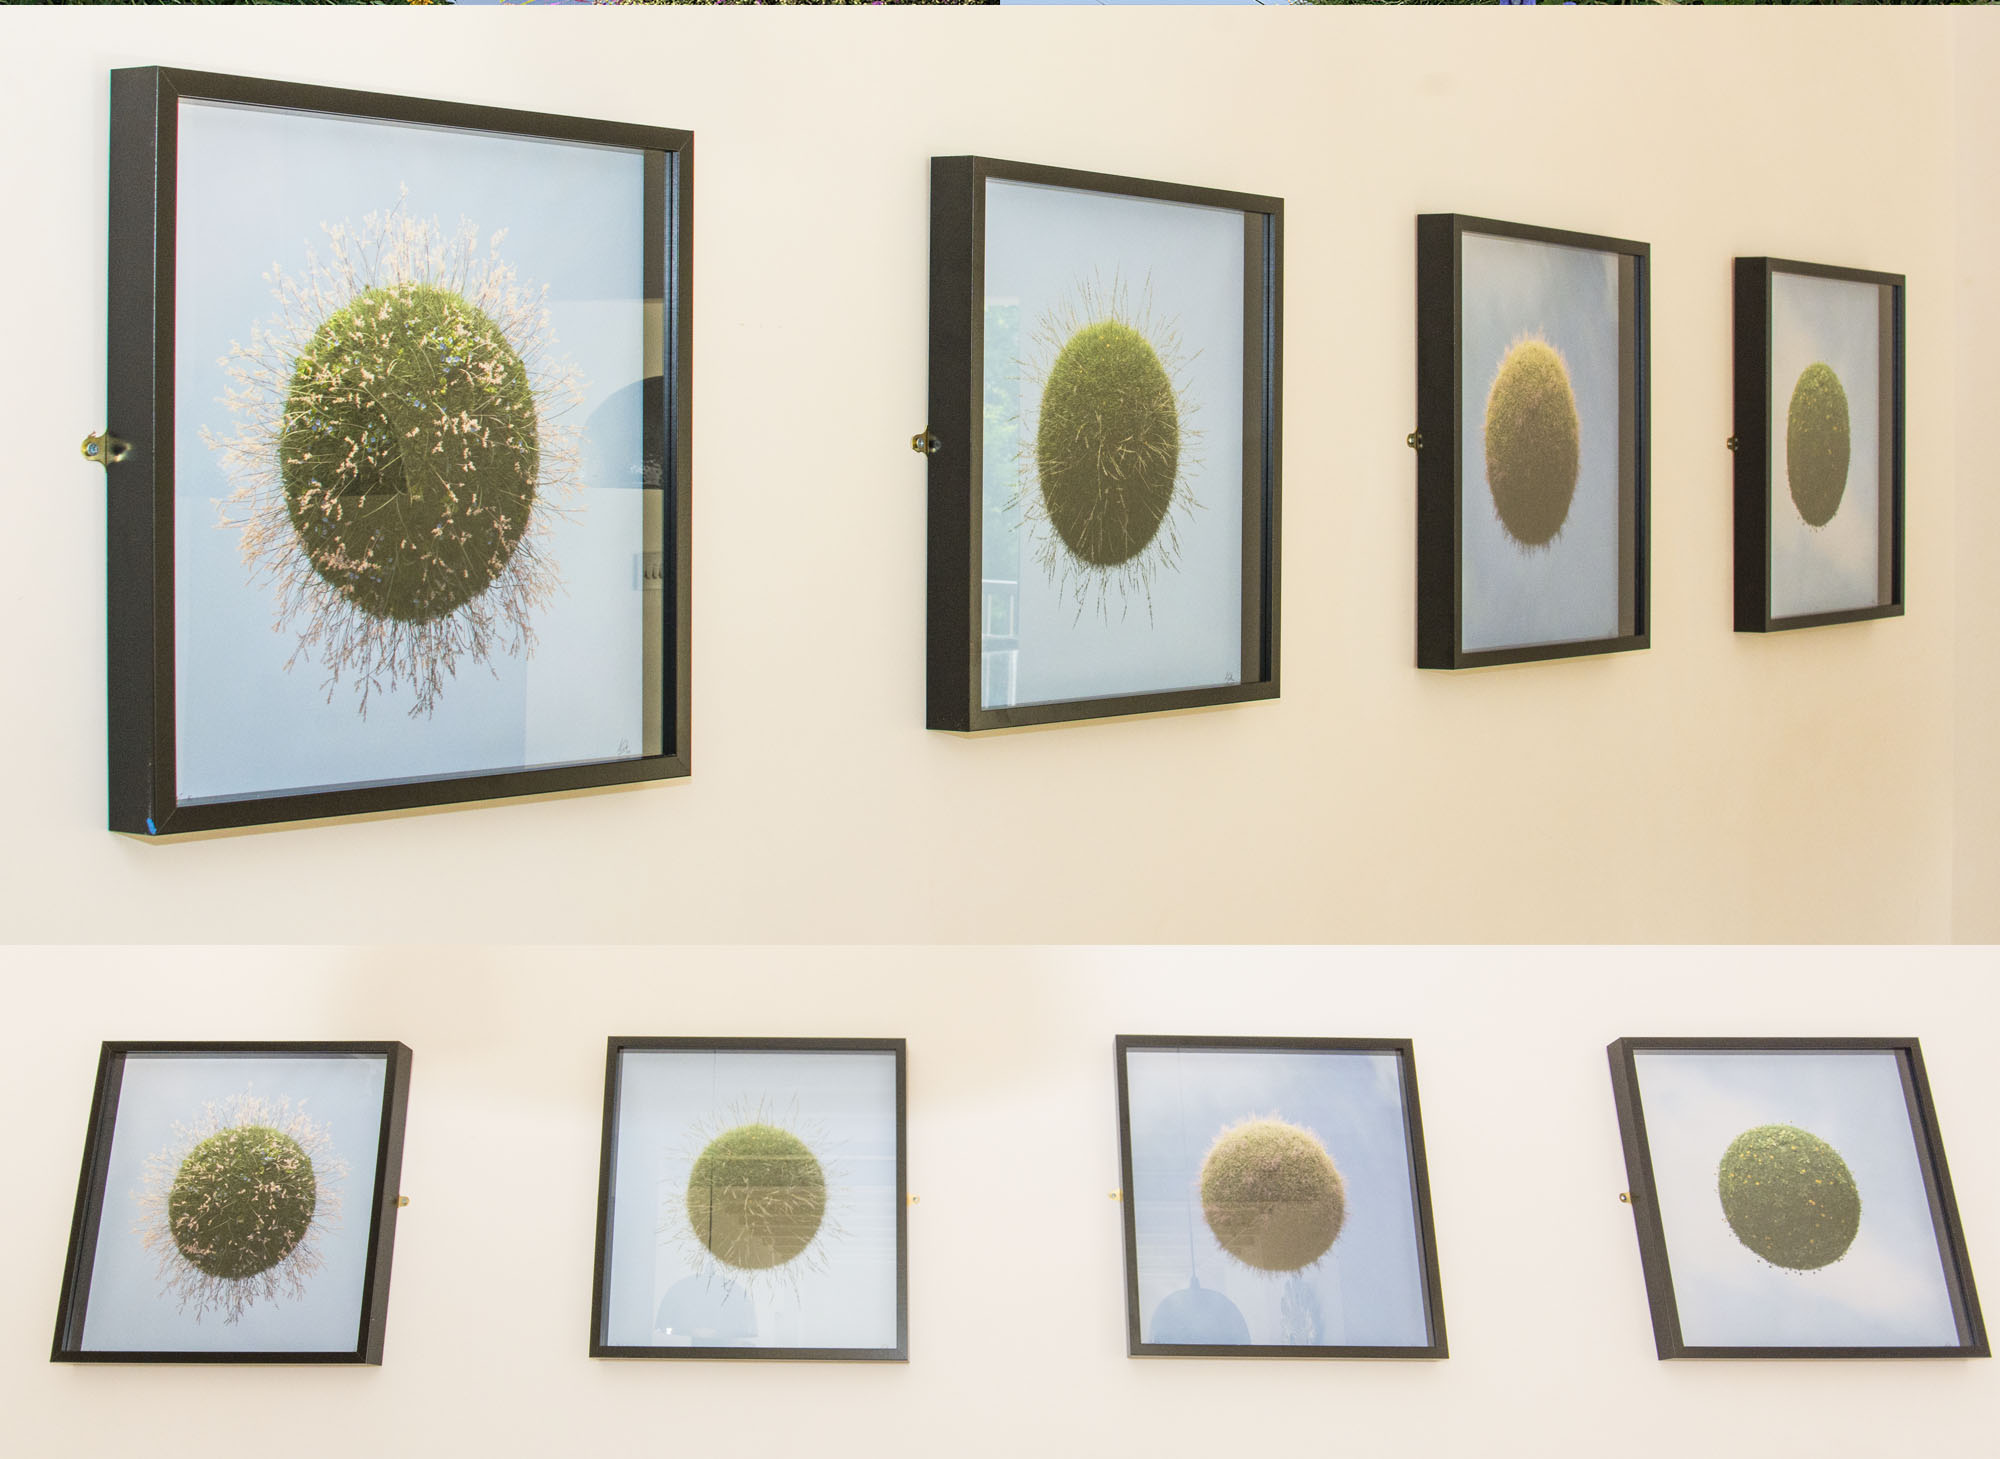 Grass Planets Framed